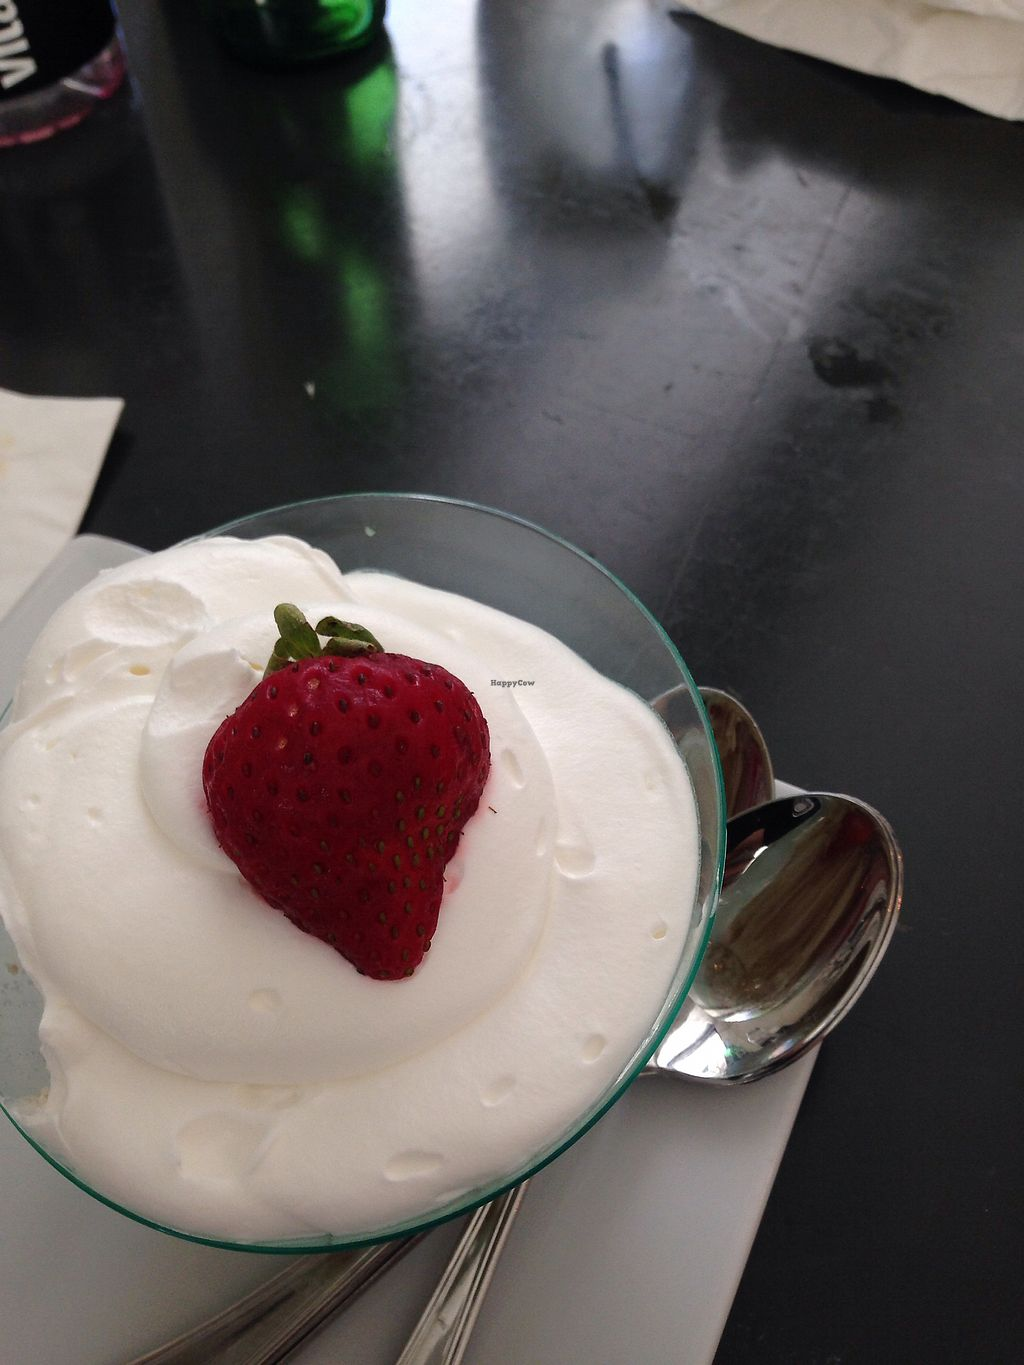 """Photo of The Grove  by <a href=""""/members/profile/asherduncan"""">asherduncan</a> <br/>Vegan Strawberry Shortcake <br/> July 7, 2017  - <a href='/contact/abuse/image/95643/277601'>Report</a>"""